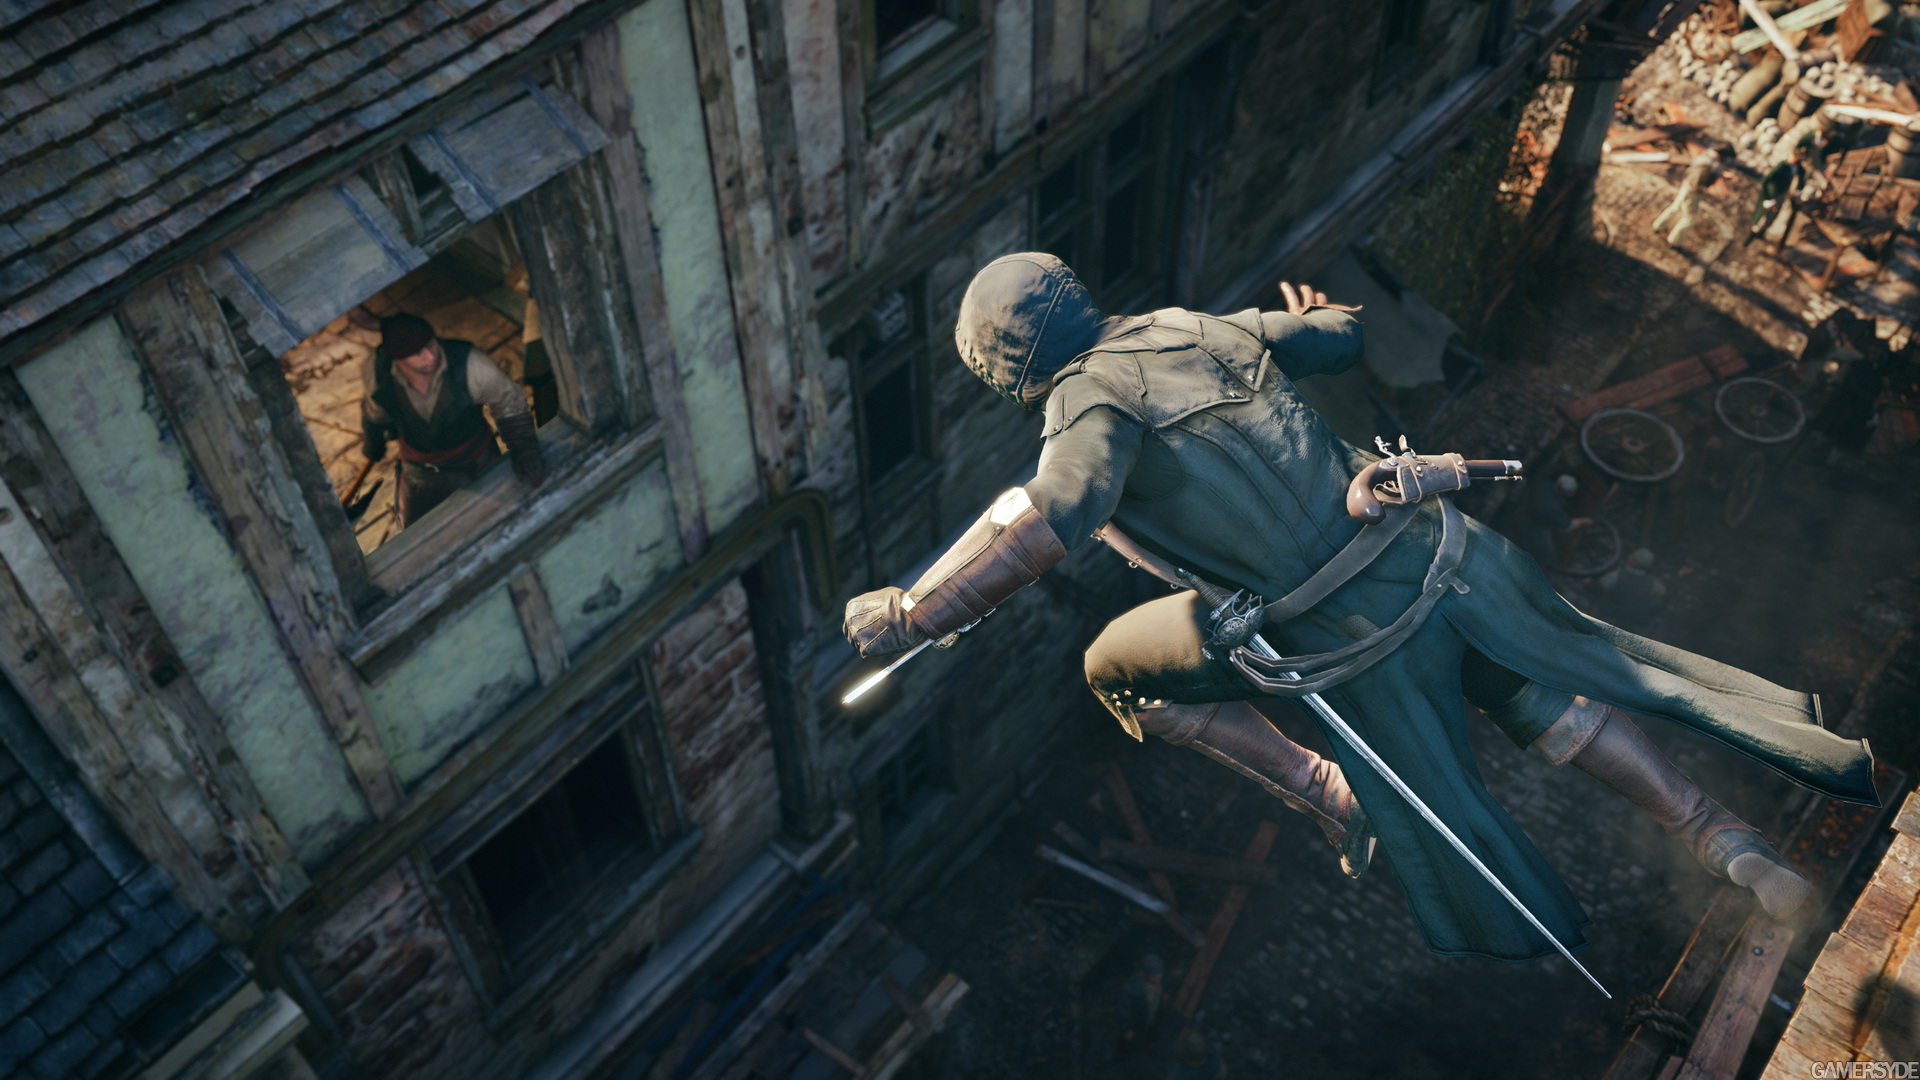 [Comic-Con] Novo gameplay de Assassin's Creed: Unity Image_assassin_s_creed_unity-25823-2908_0006